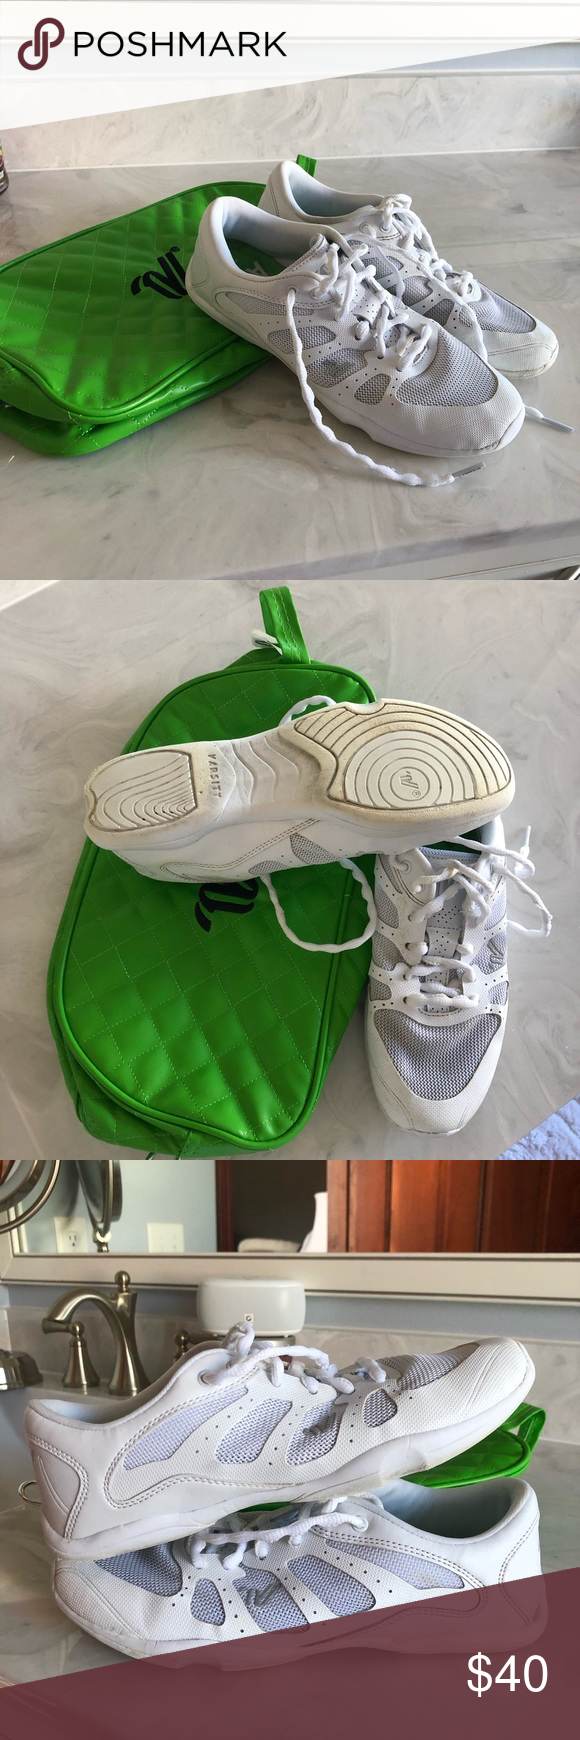 Varsity A41 Cheer Shoes Great condition